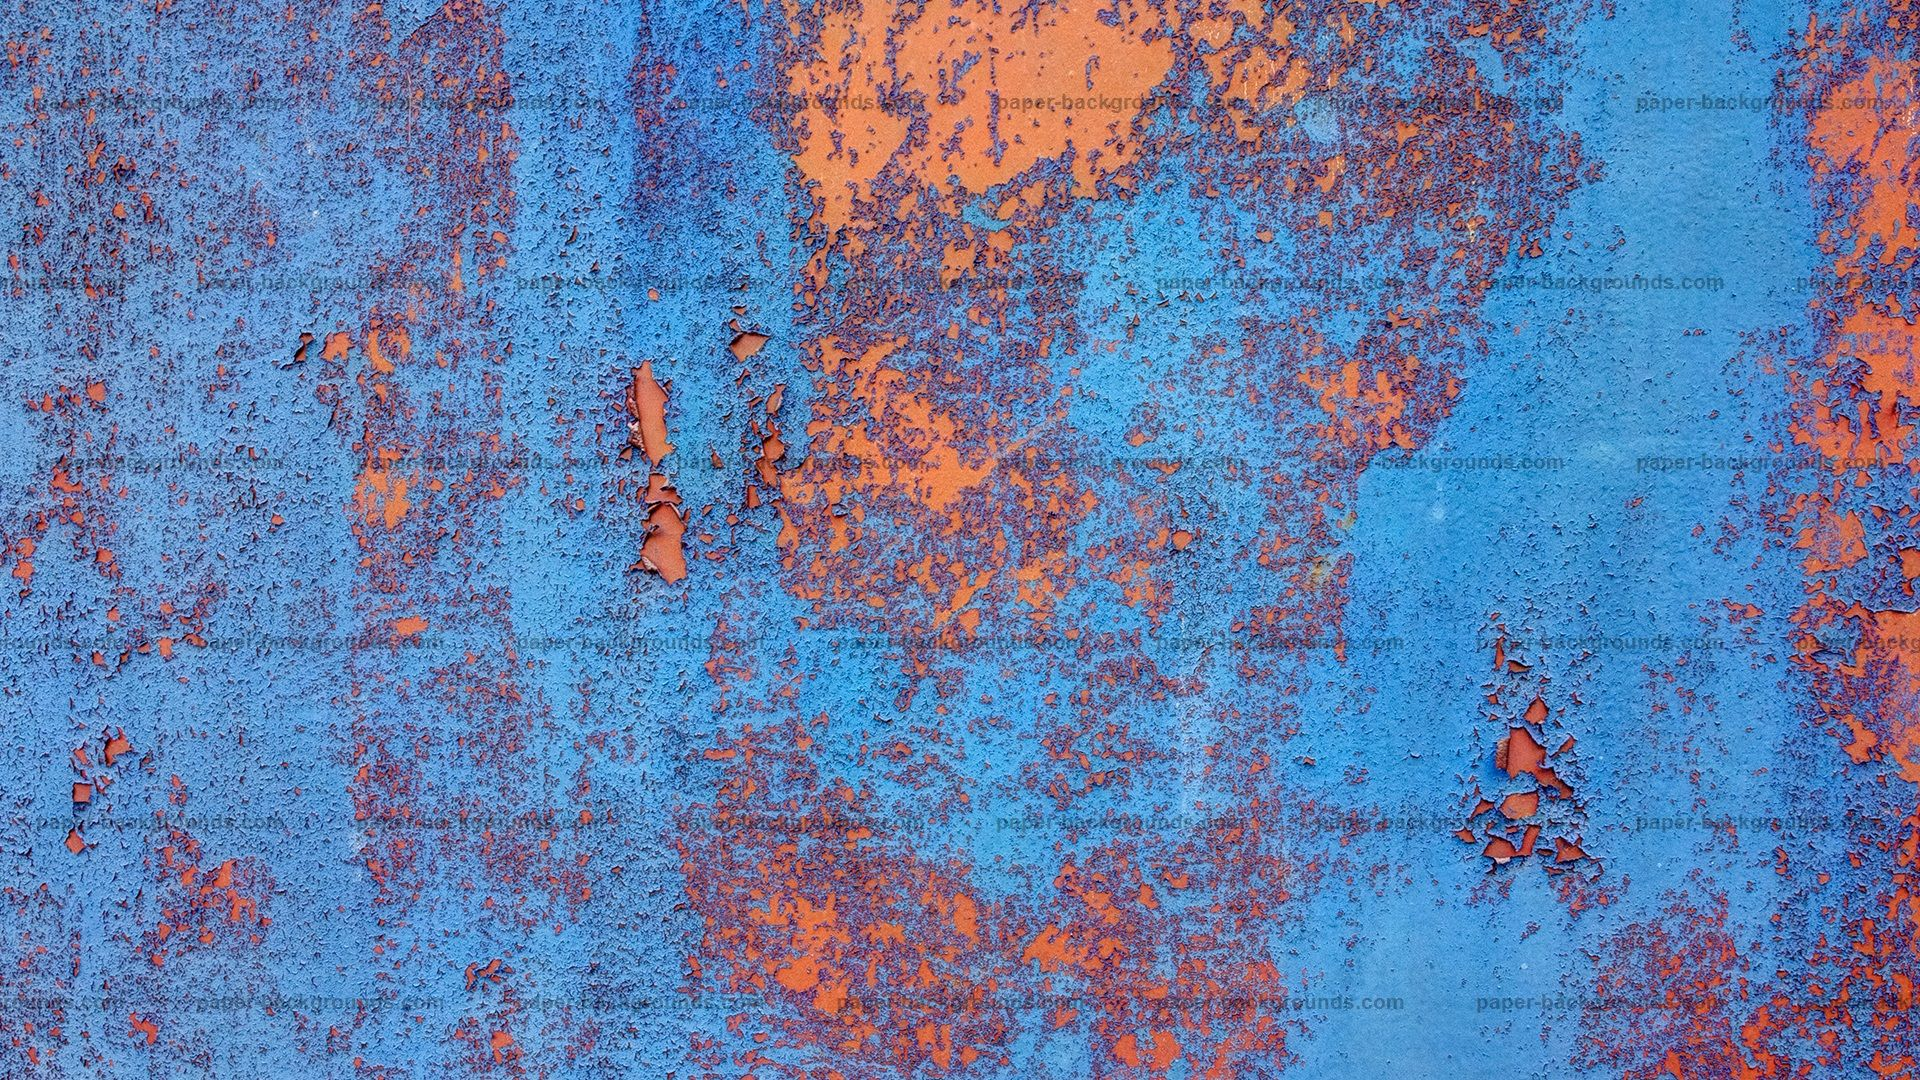 Blue Orange Rugged Rusty Metal Texture Hd Paper Backgrounds